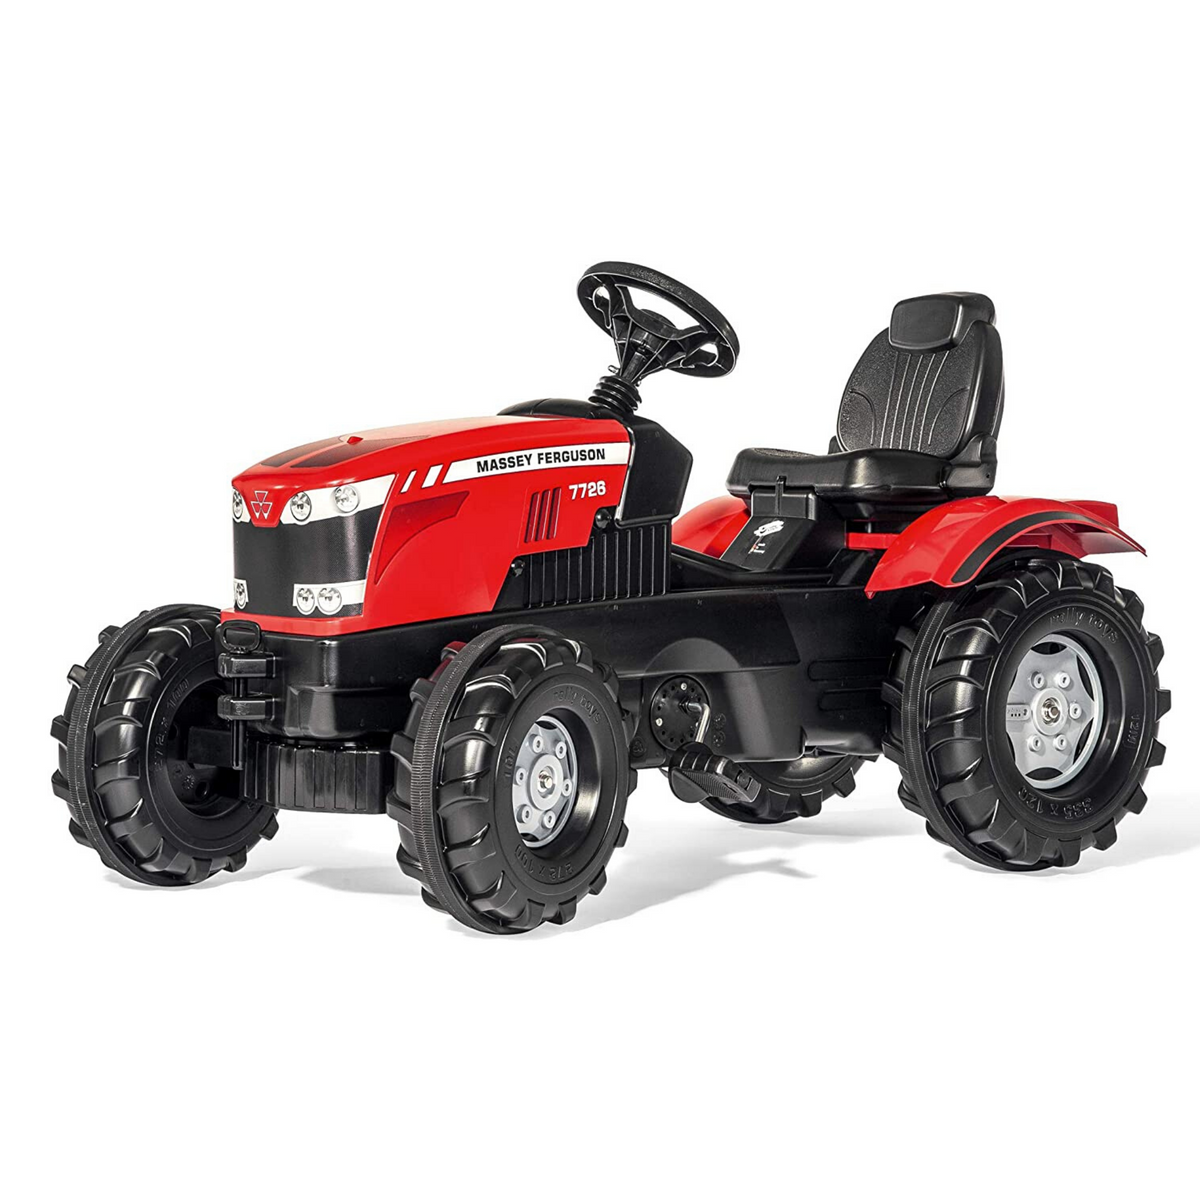 Rolly Massey Ferguson 8650 Kids Tractor